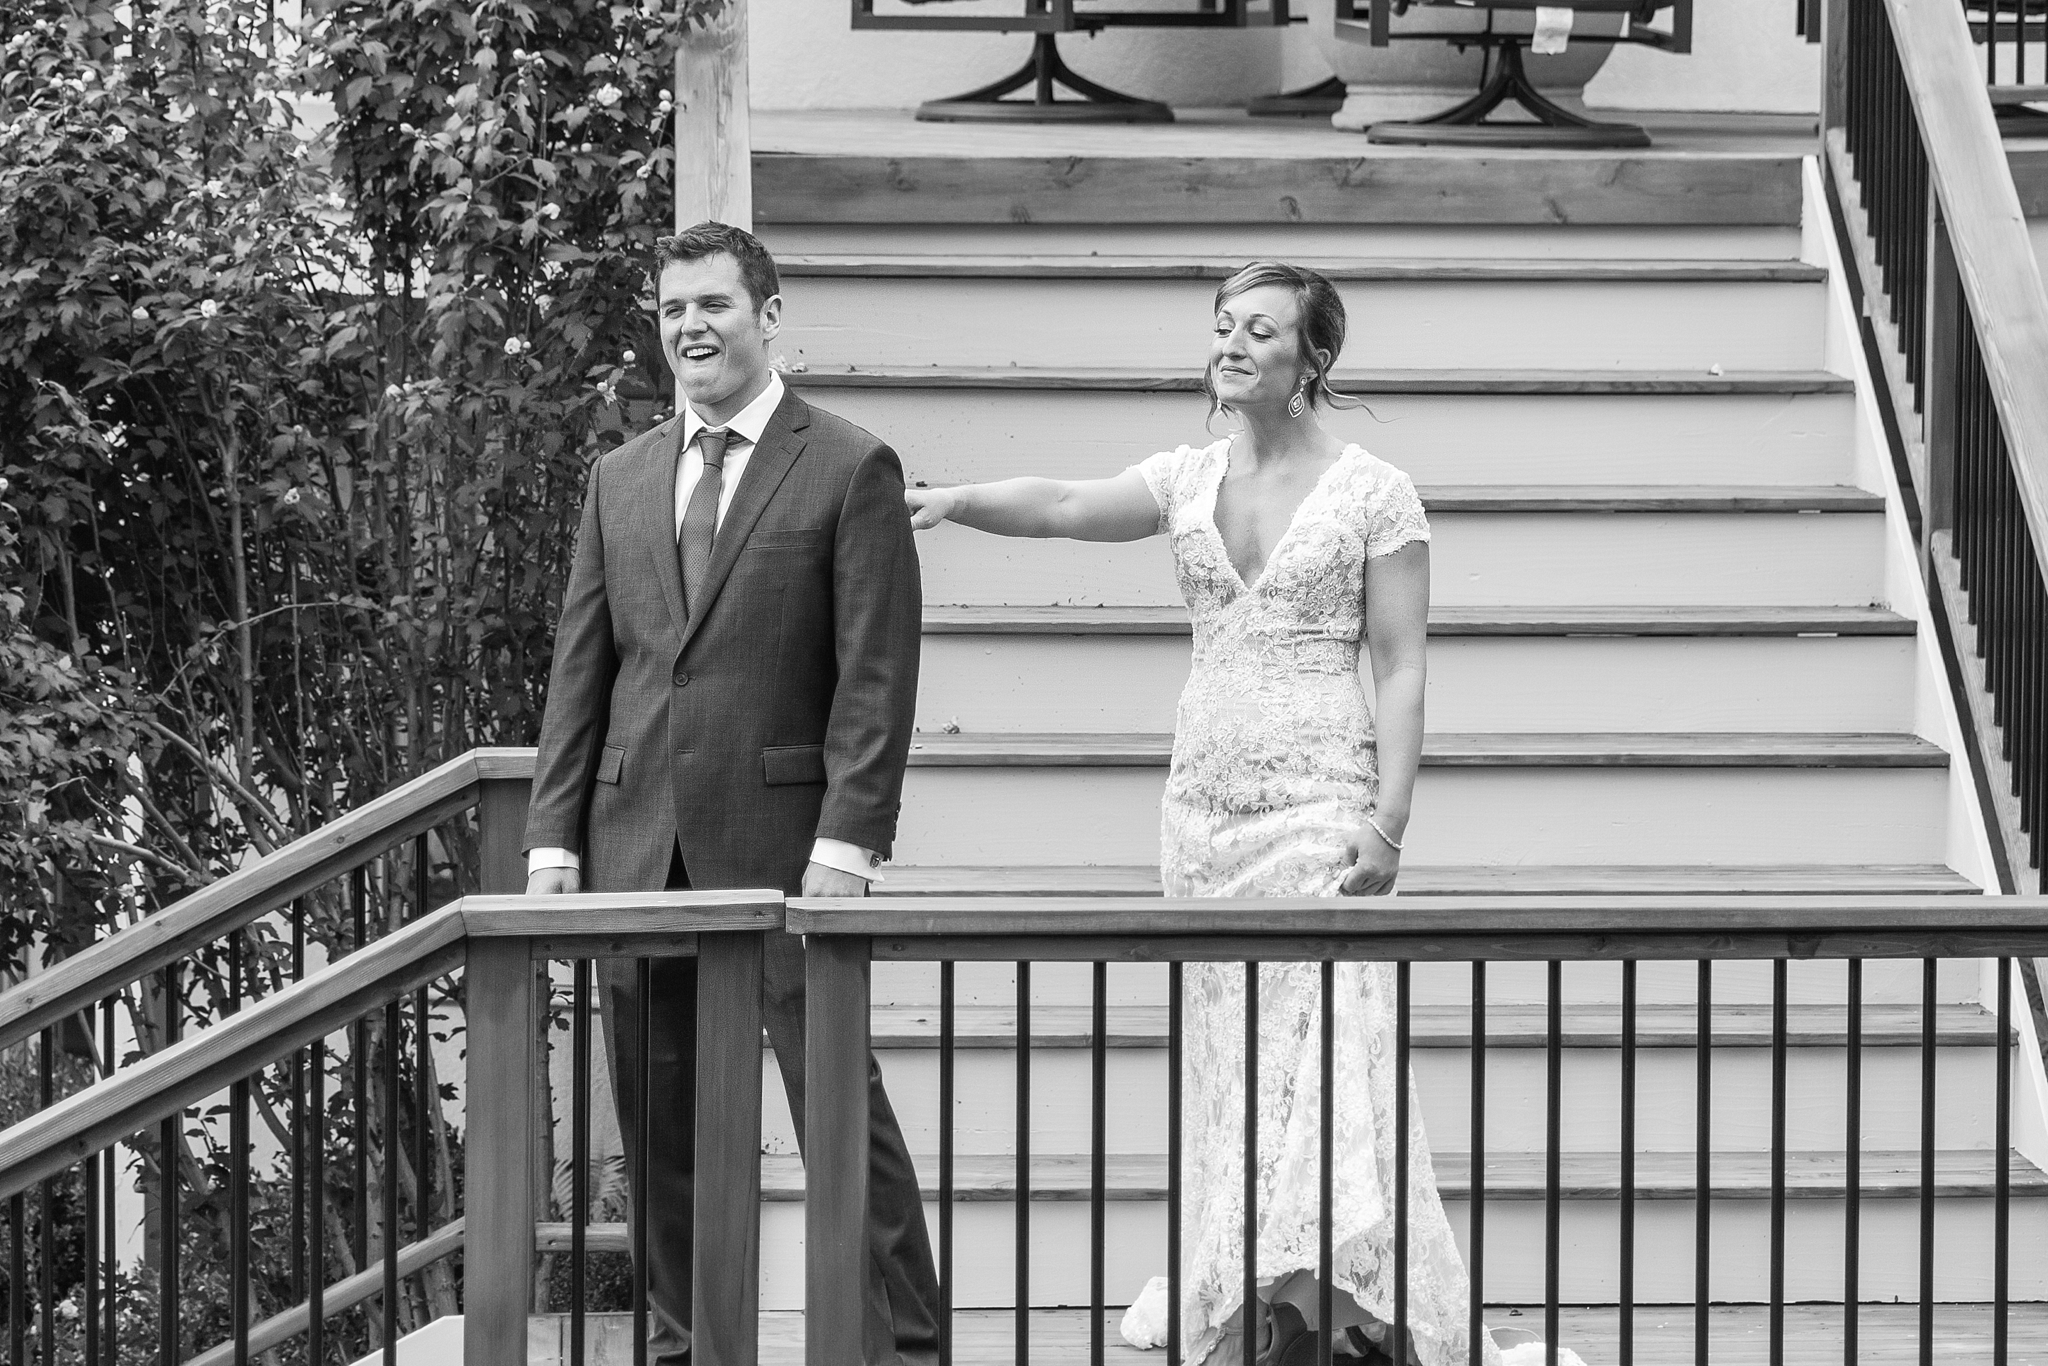 romantic-artful-candid-wedding-photos-in-detroit-lansing-ann-arbor-northern-michigan-and-chicago-by-courtney-carolyn-photography_0075.jpg